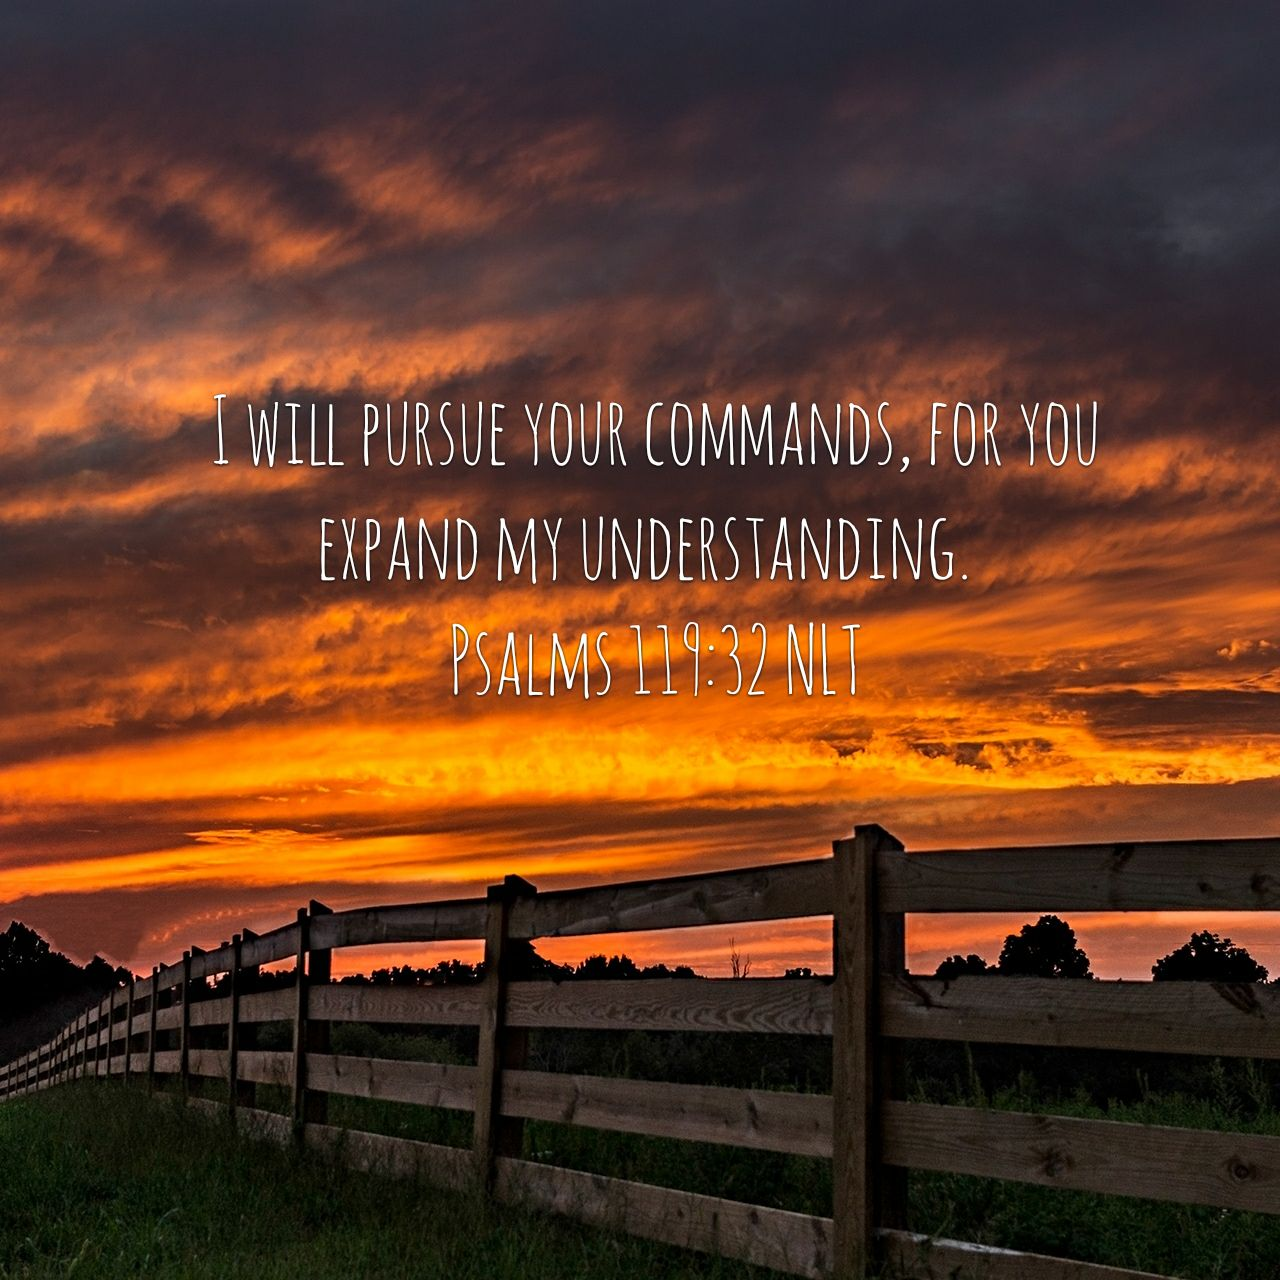 I will pursue your commands, for you expand my understanding. - Psalms 119:32 NLT